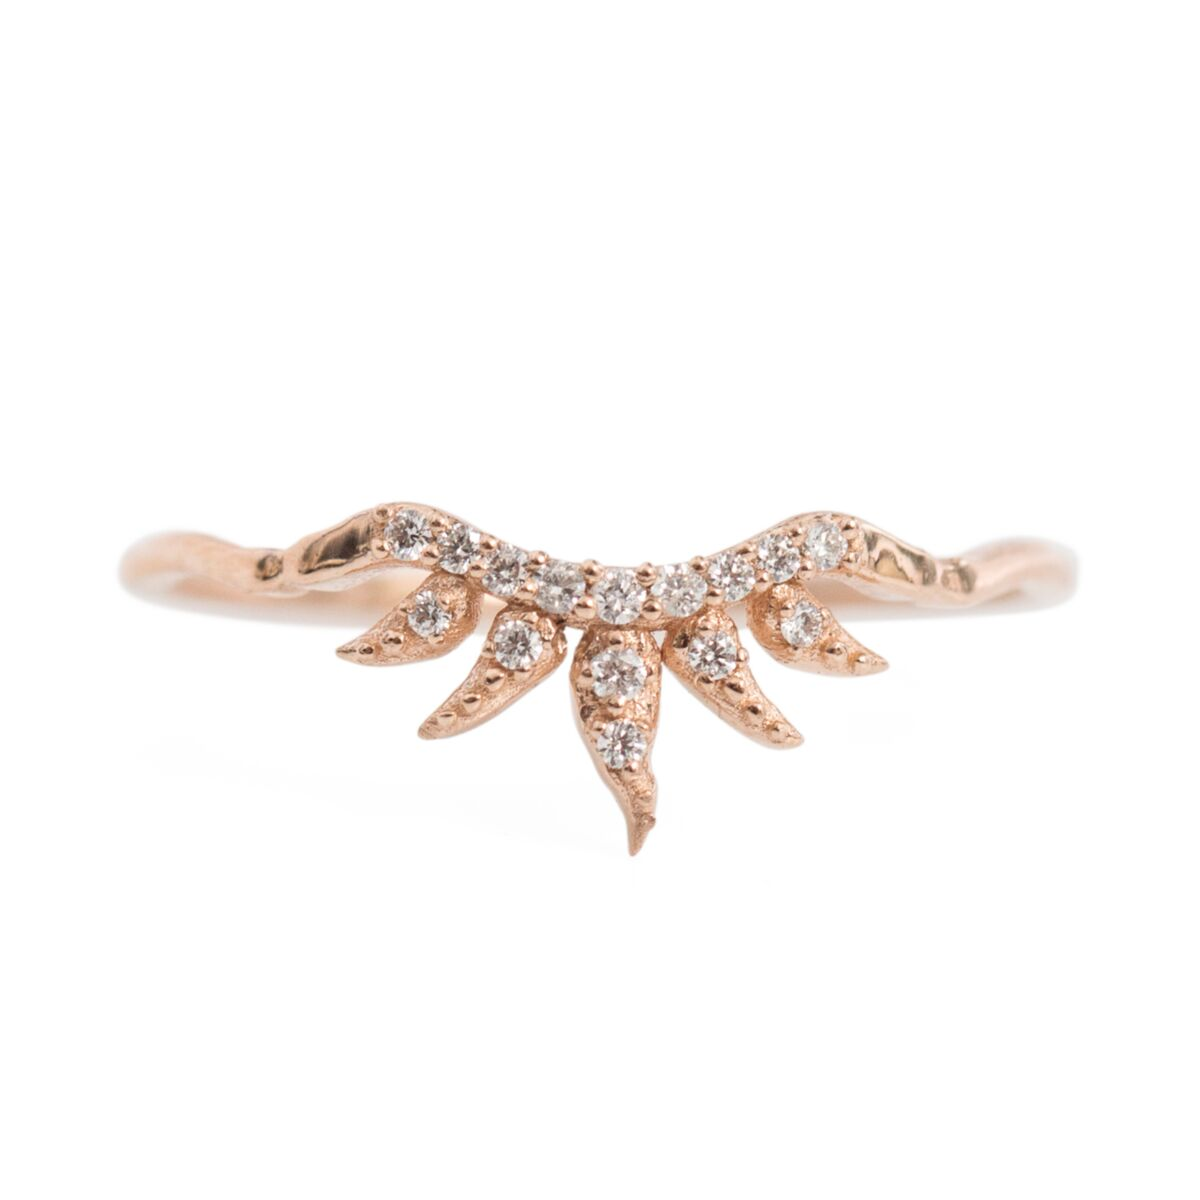 Arabesque Ring image